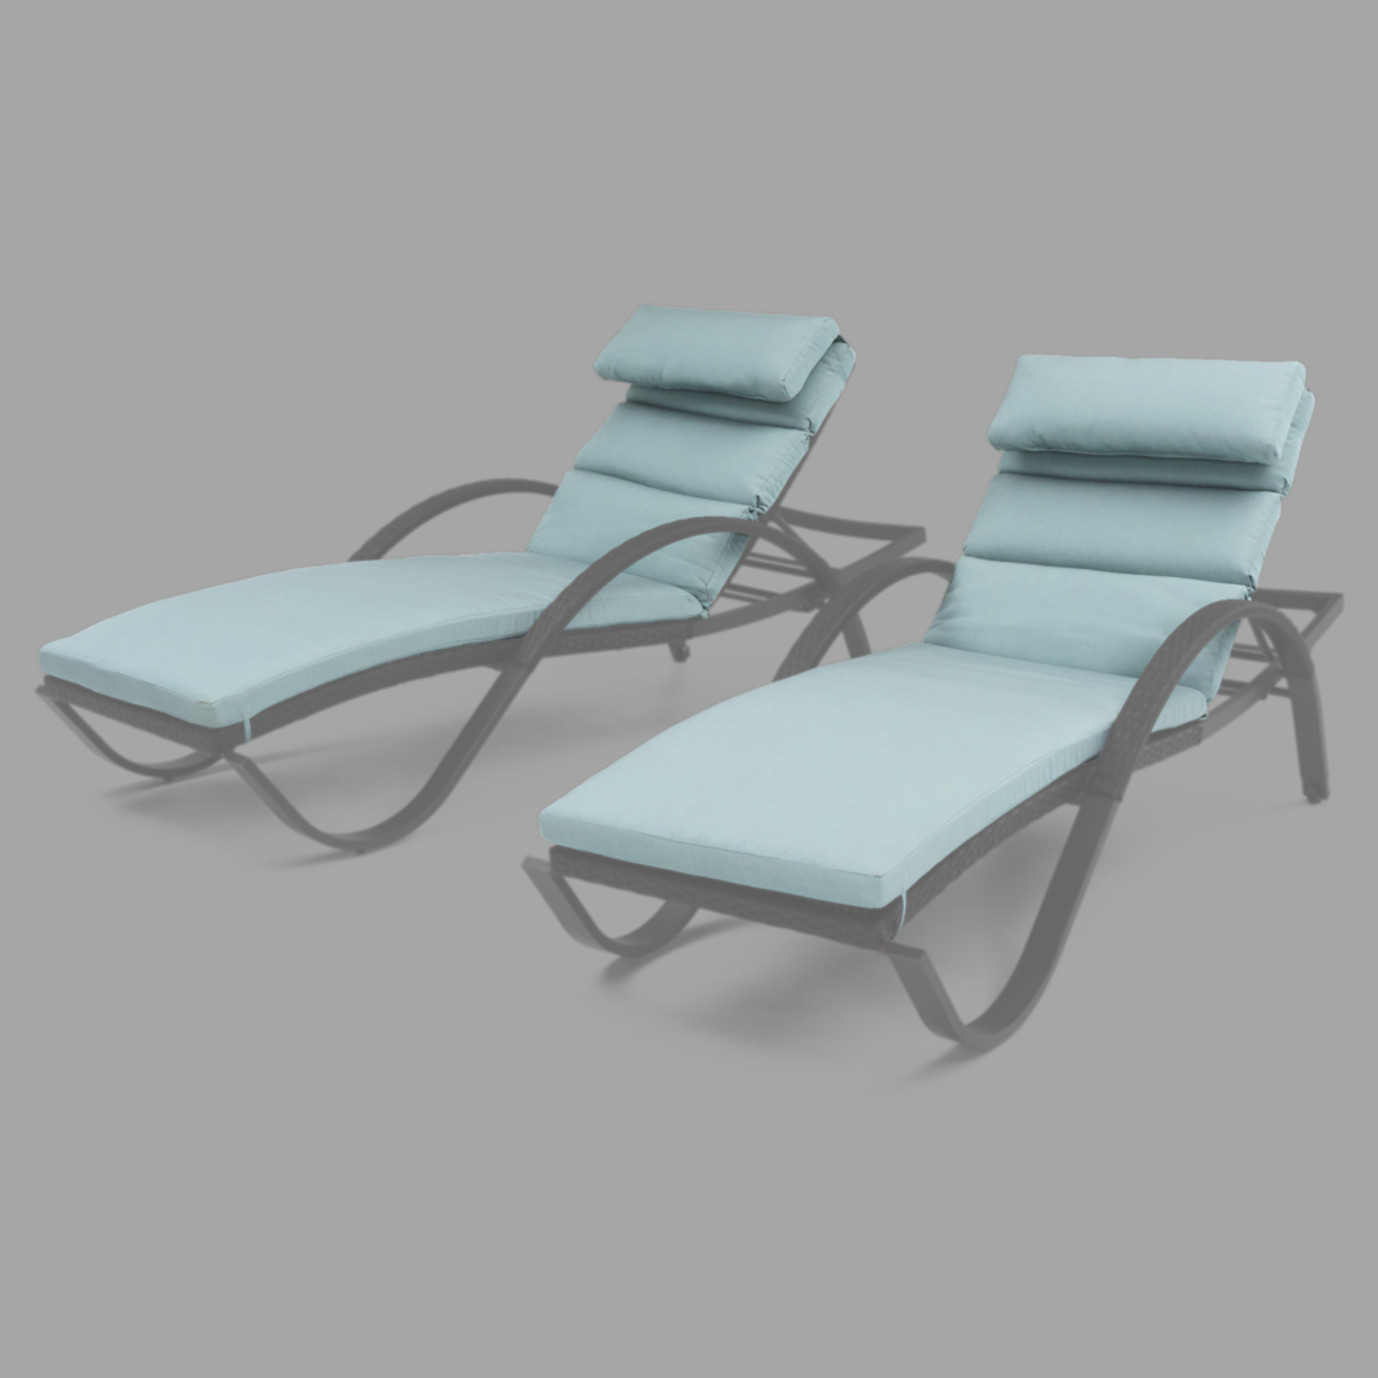 Outdoor chaise lounges cushions rst brands for 23 w outdoor cushion for chaise